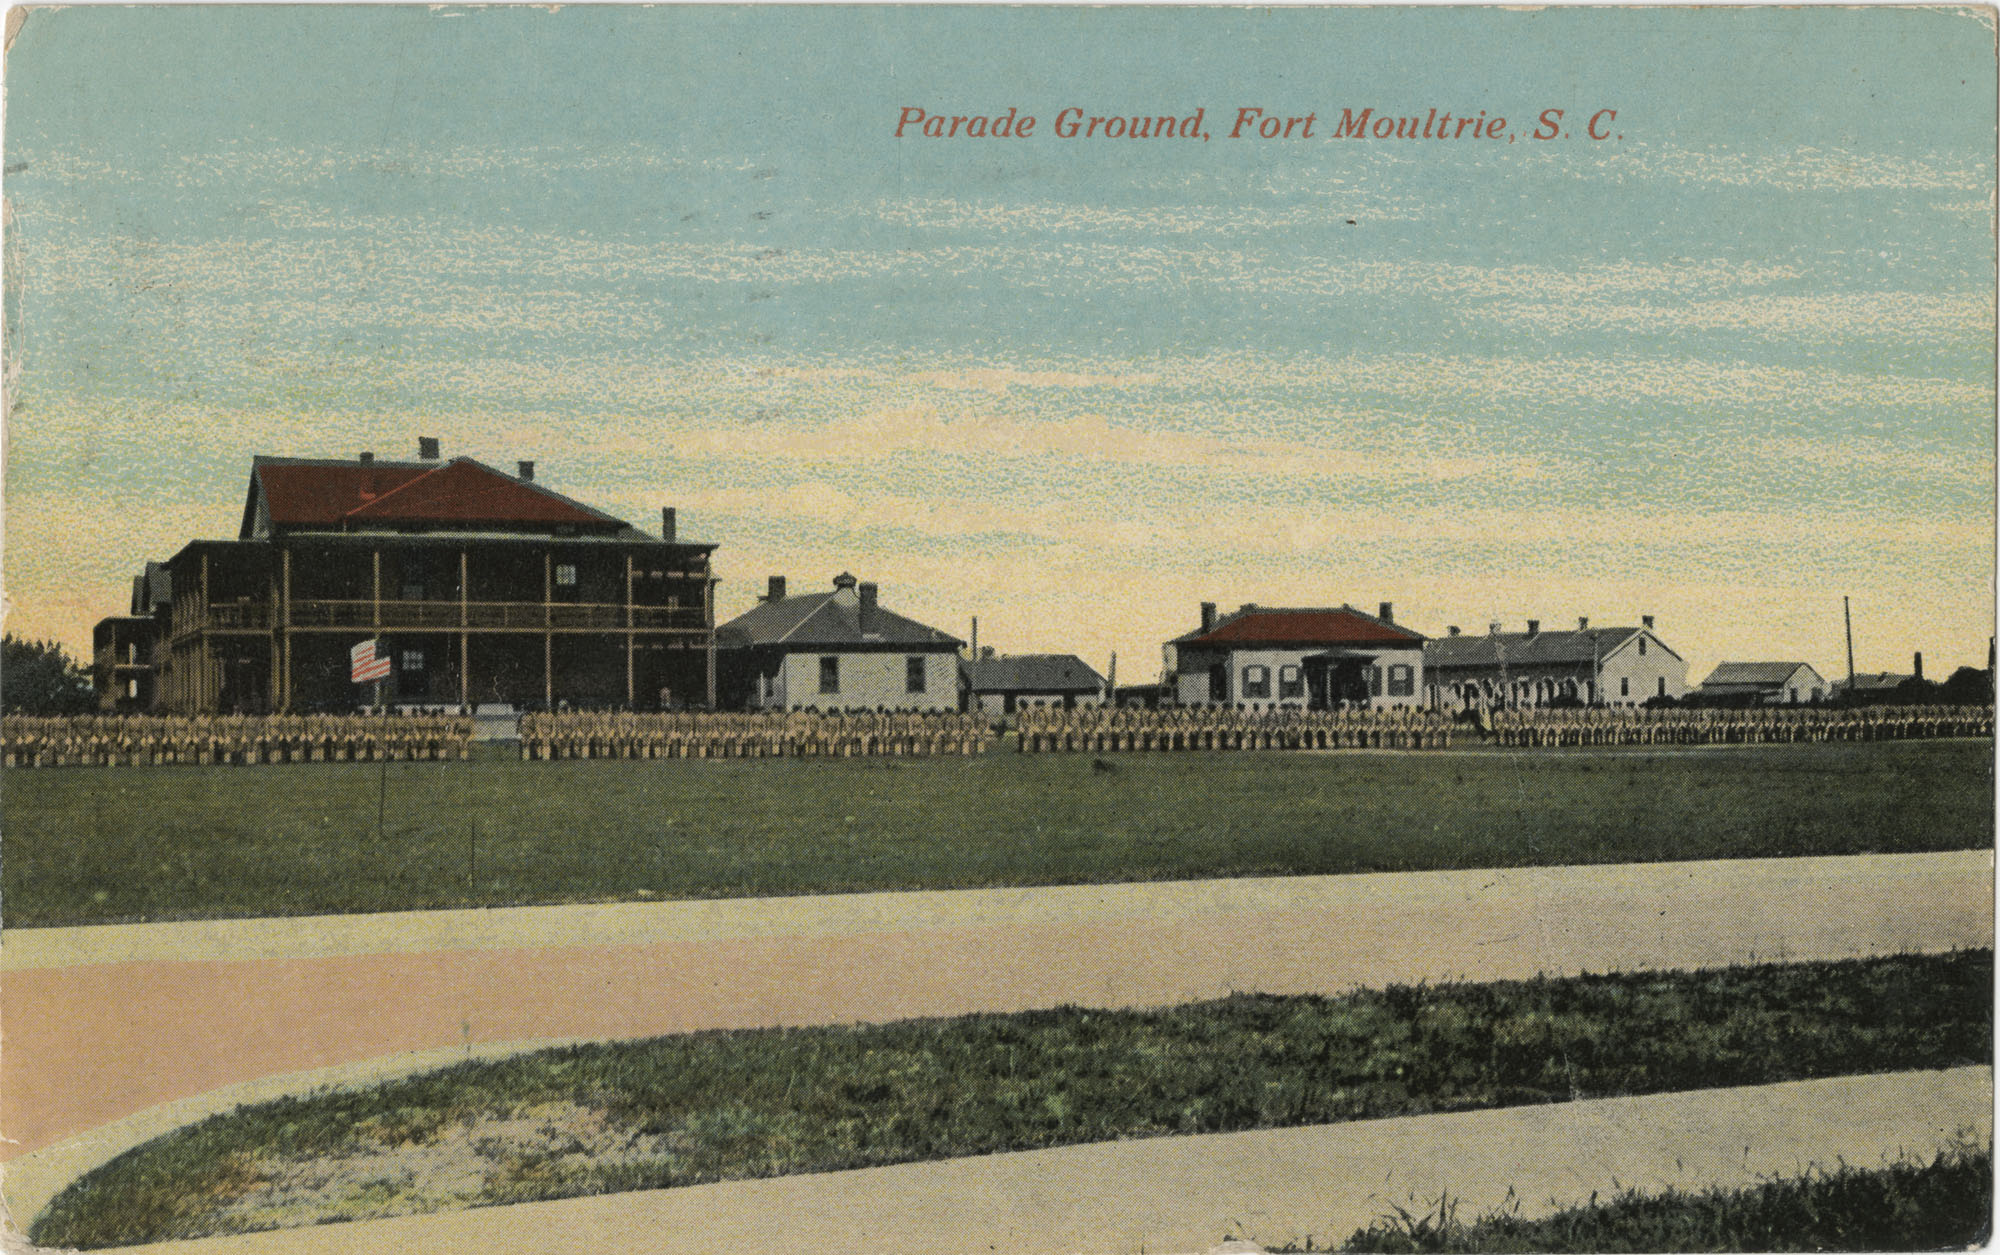 Parade Ground, Fort Moultrie, S.C.